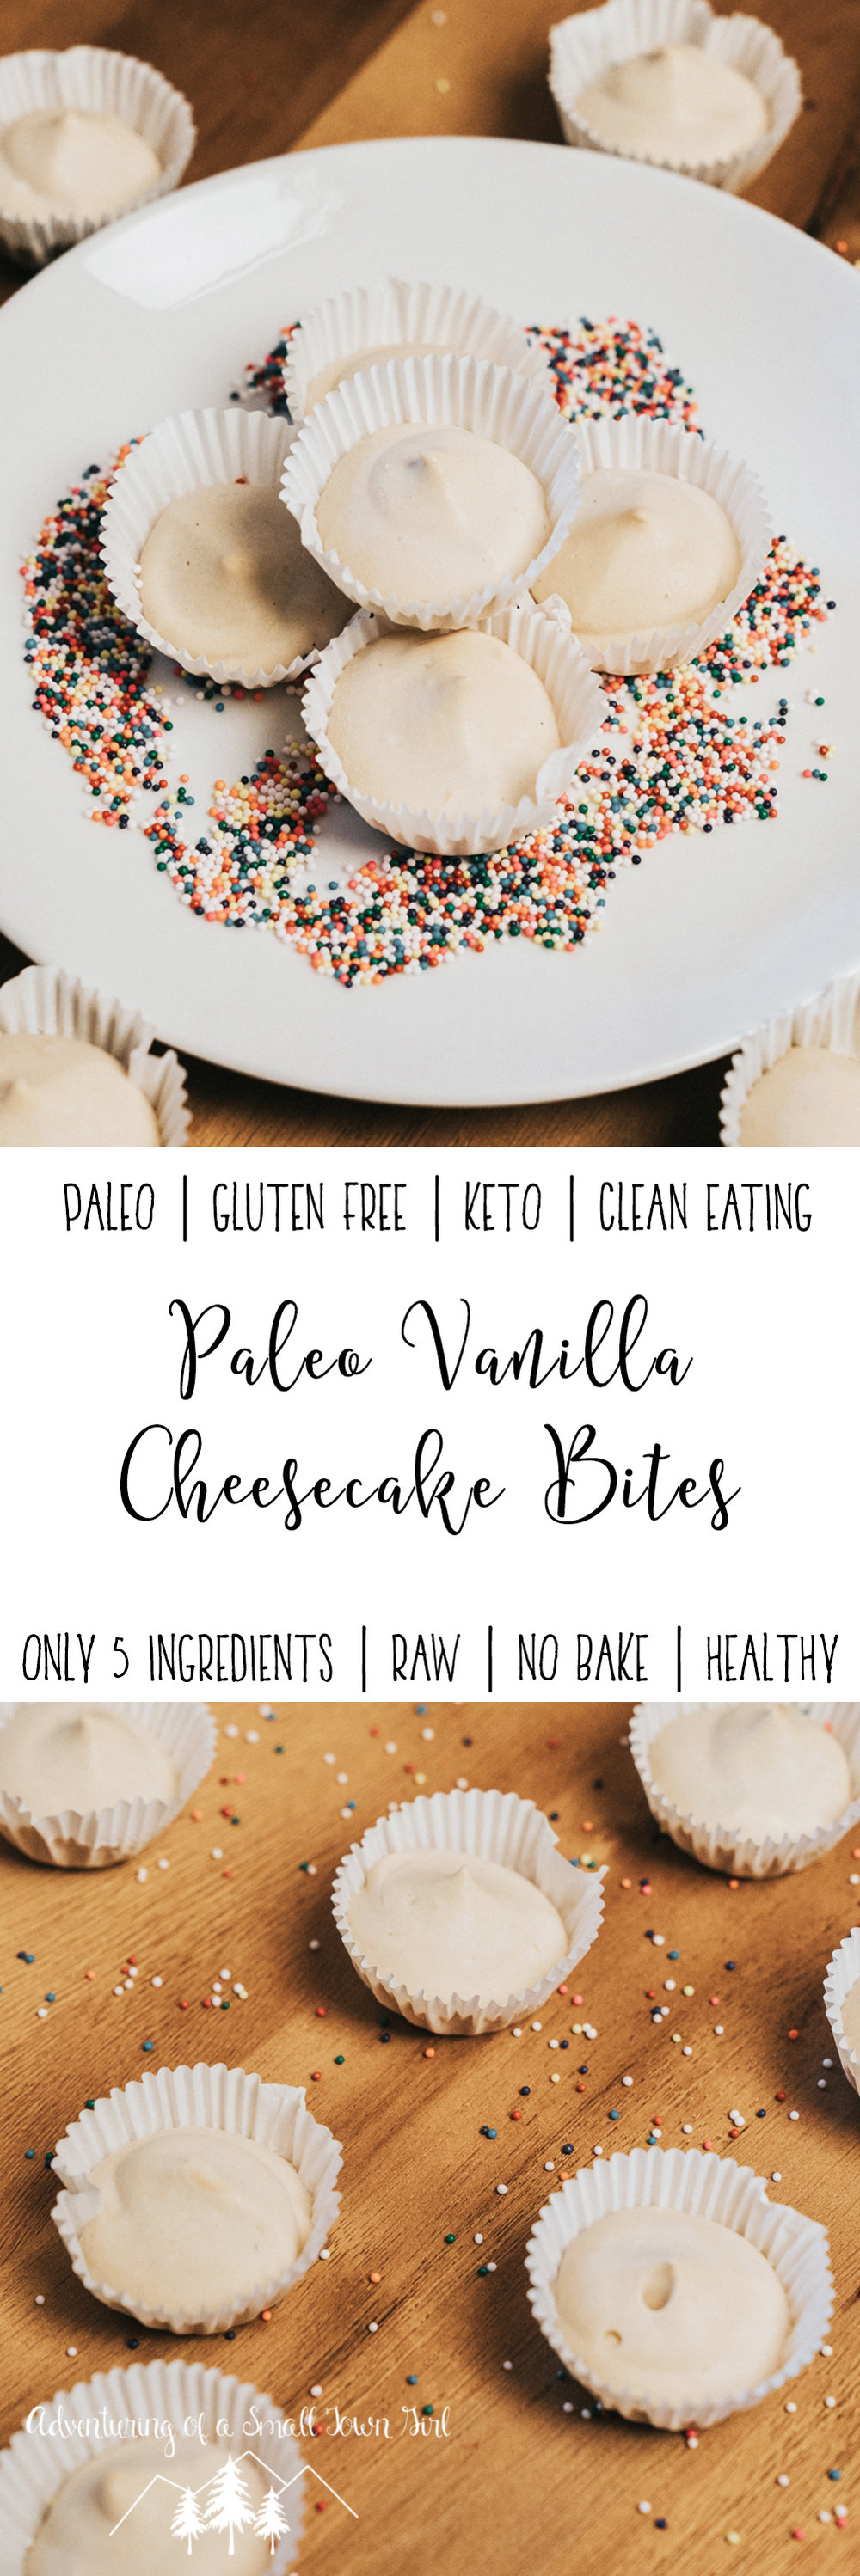 Paleo Cheesecake Bites Recipe- Vanilla Cheesecake Fat Bombs Recipe by Adventuring of a Small Town Girl - Healthy Paleo Dessert - Raw Dessert ASTG.jpg